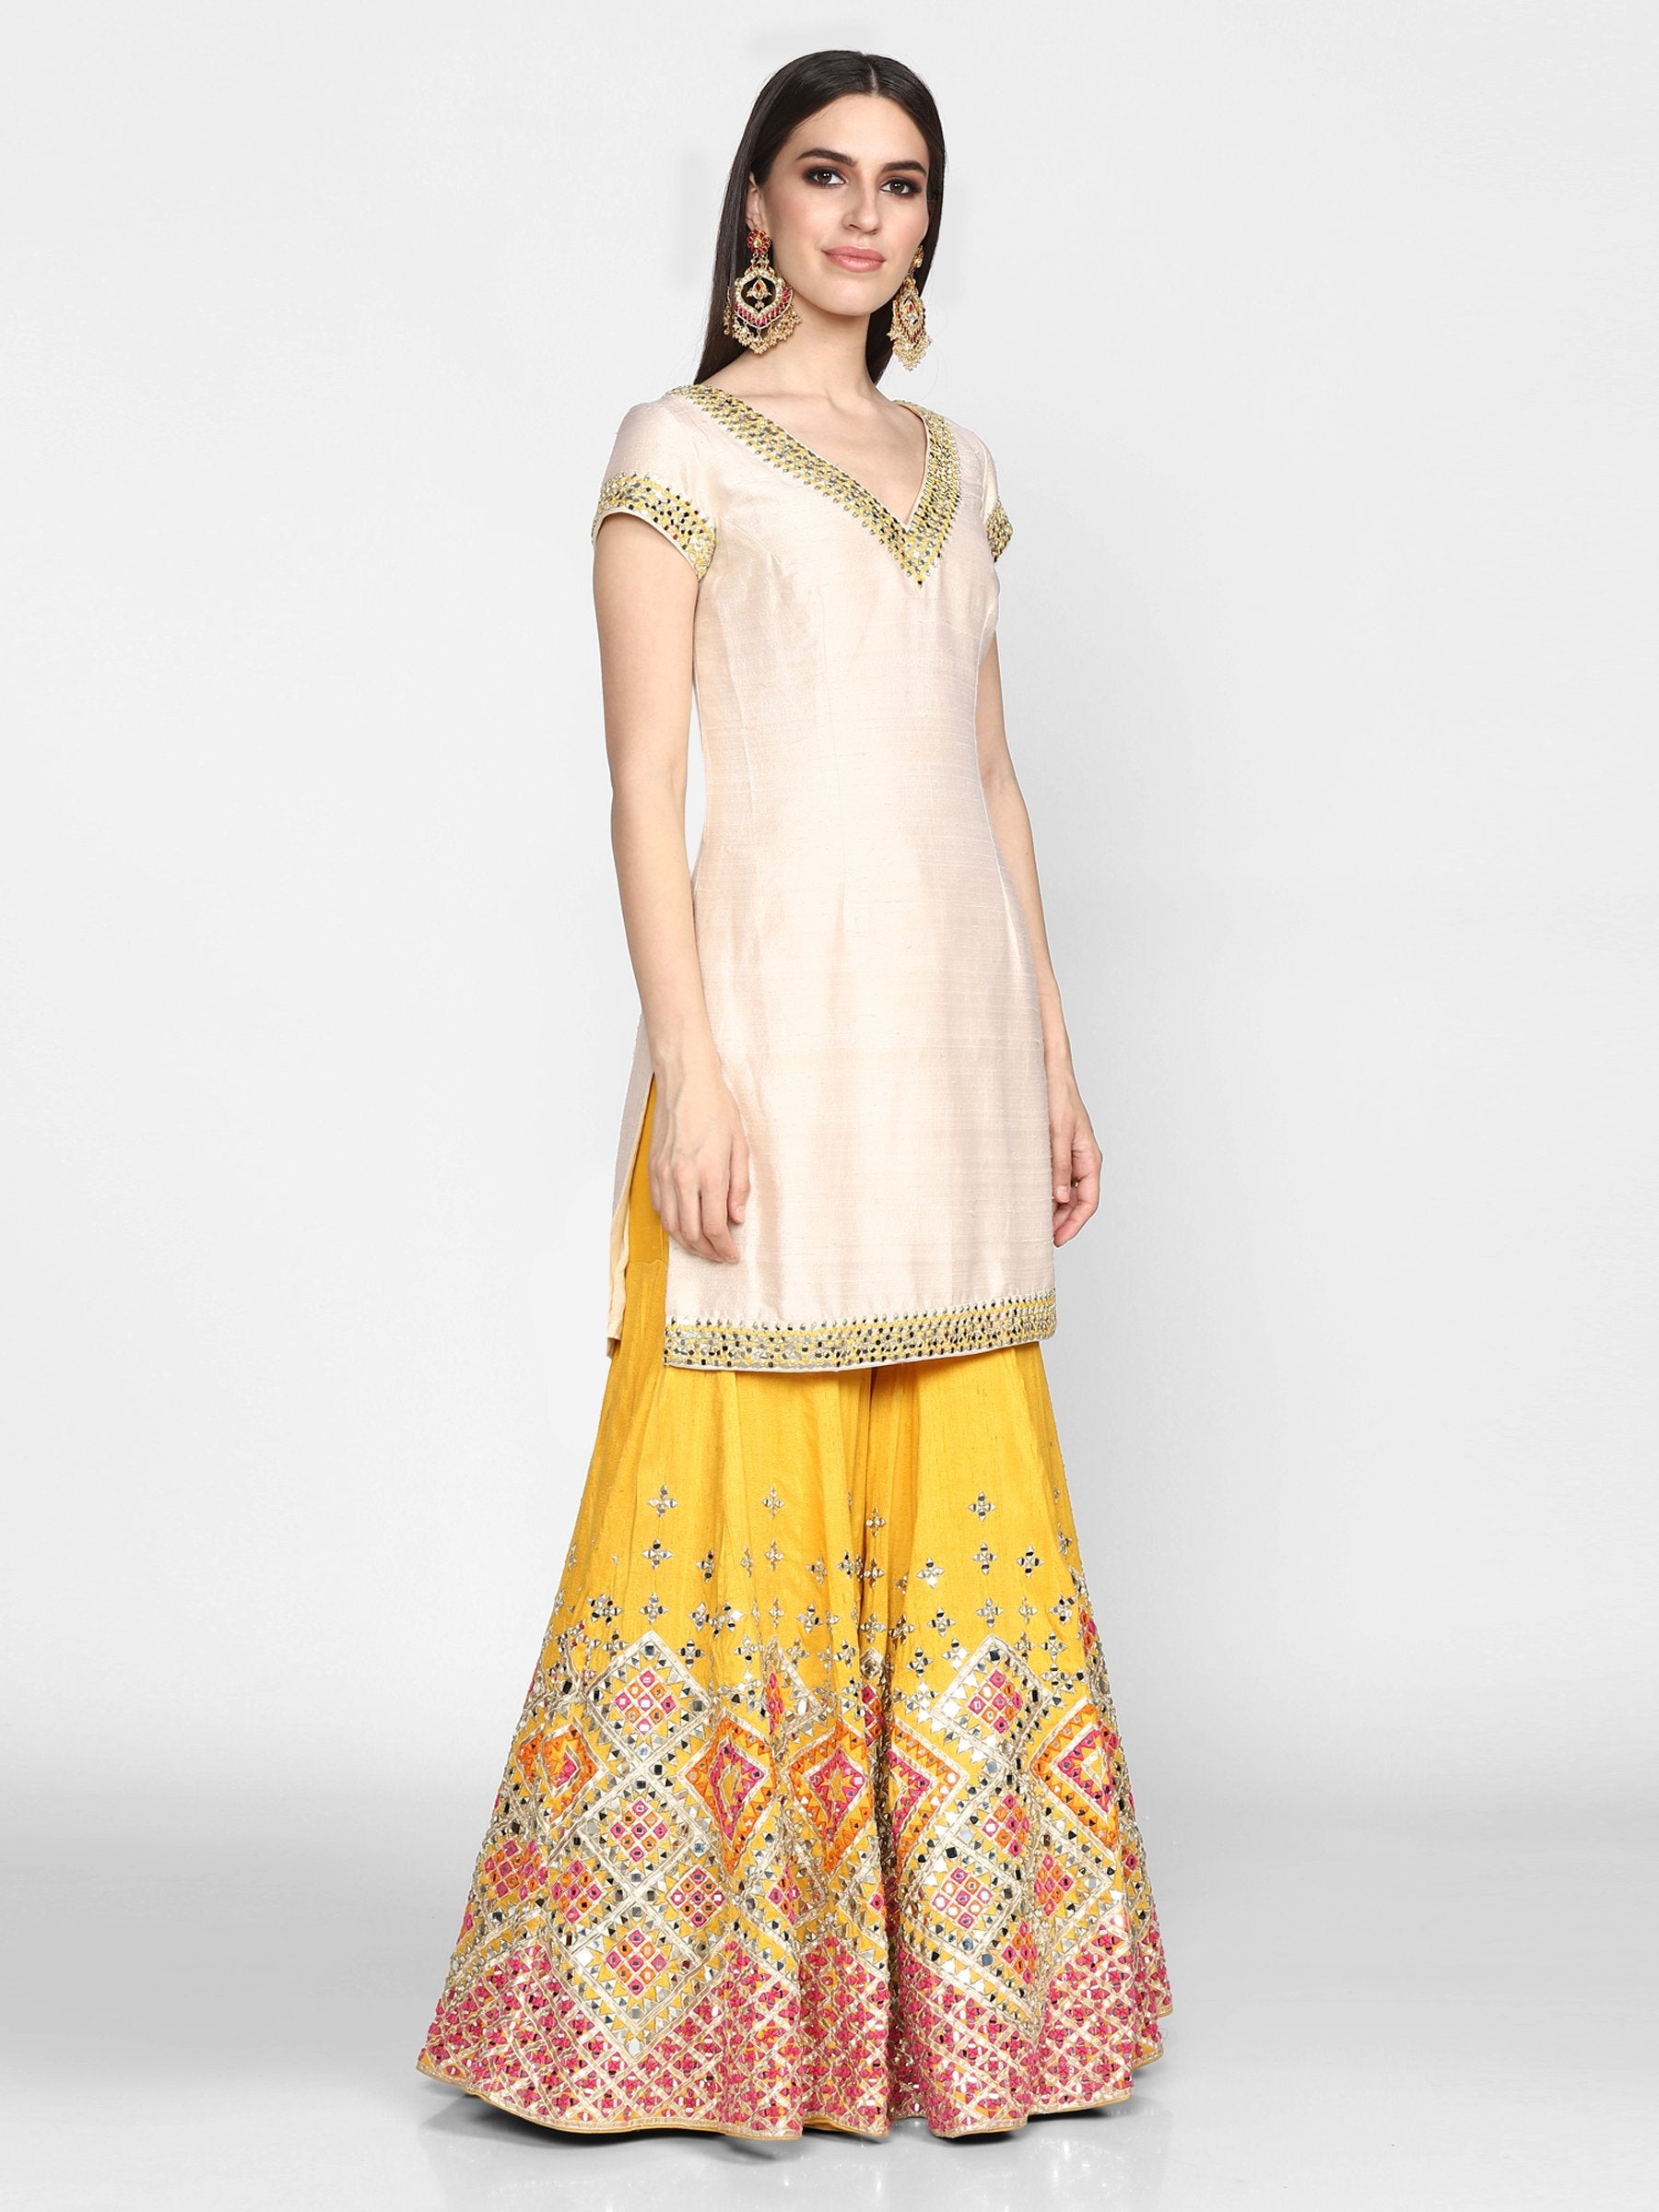 Abhinav Mishra  Off White And Yellow Sharara Set - The Grand Trunk